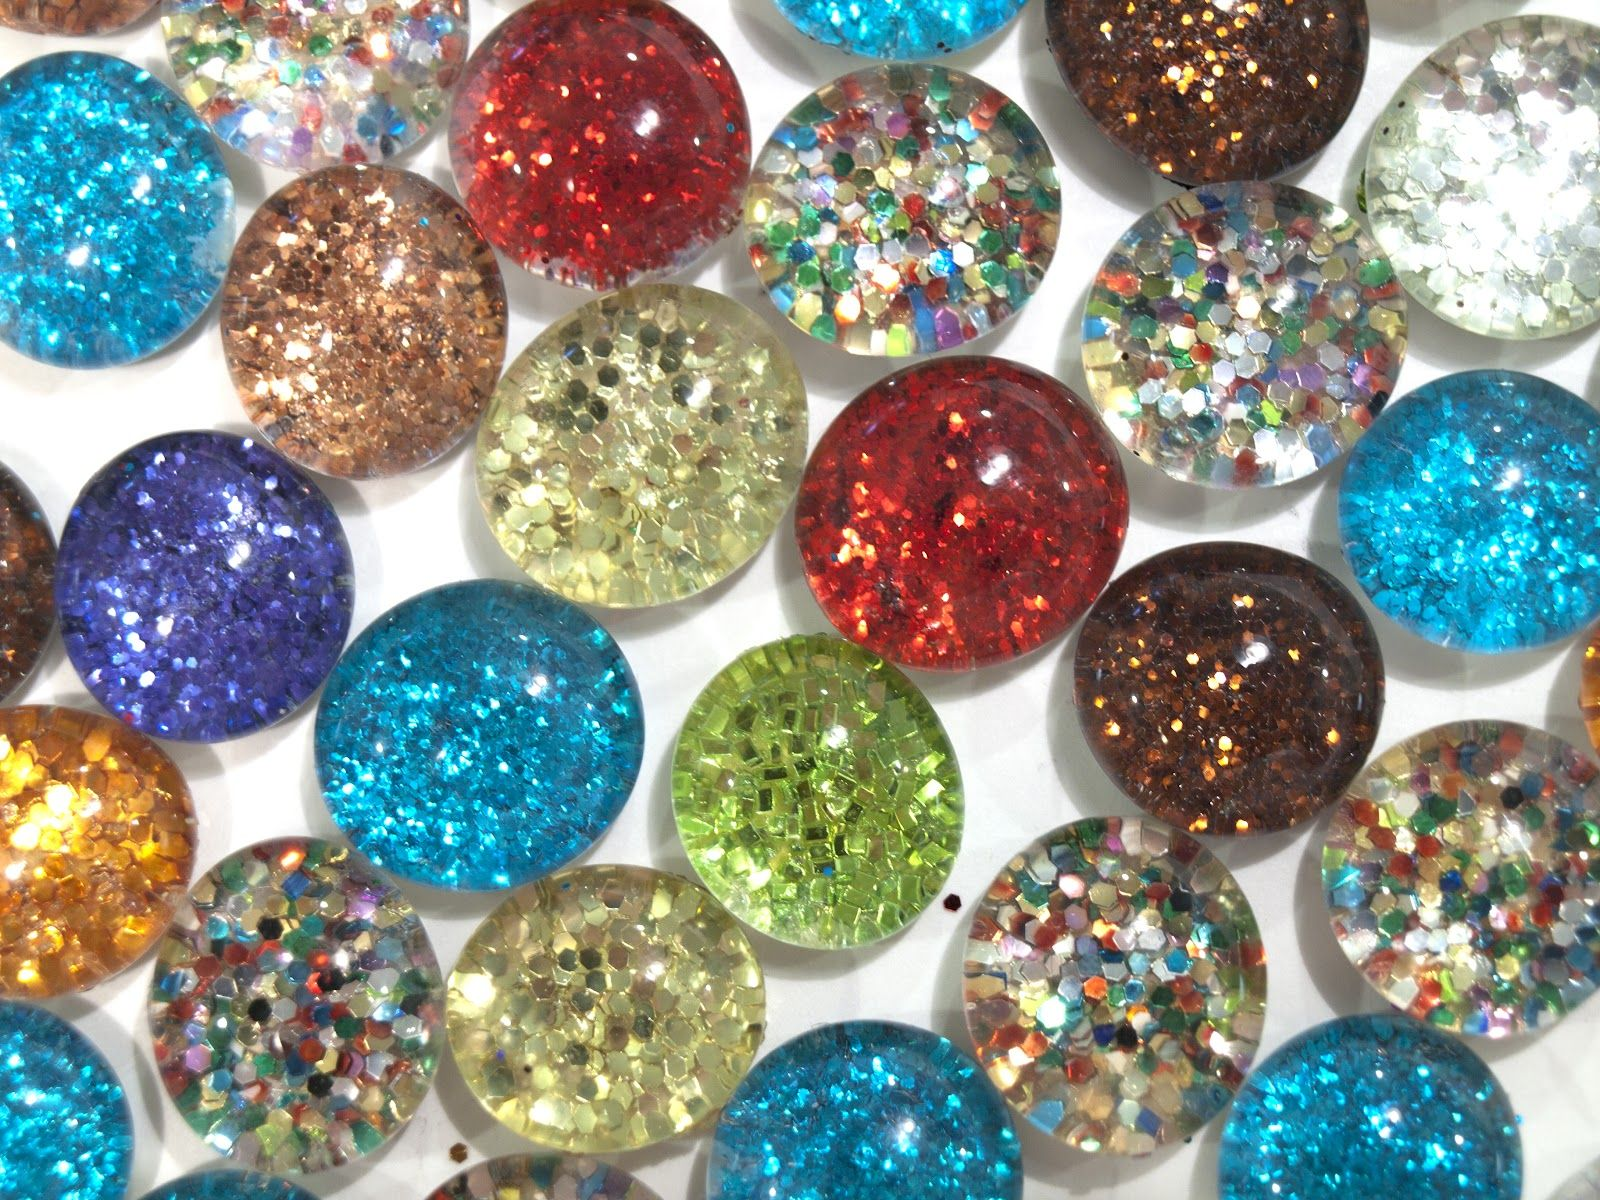 Flat glass marbles crafts - Flat Backed Marbles I Did This And You Need To Use Magnets Strong Enough To Hold Heavy Glass Stone Or They Will Only Hold Them